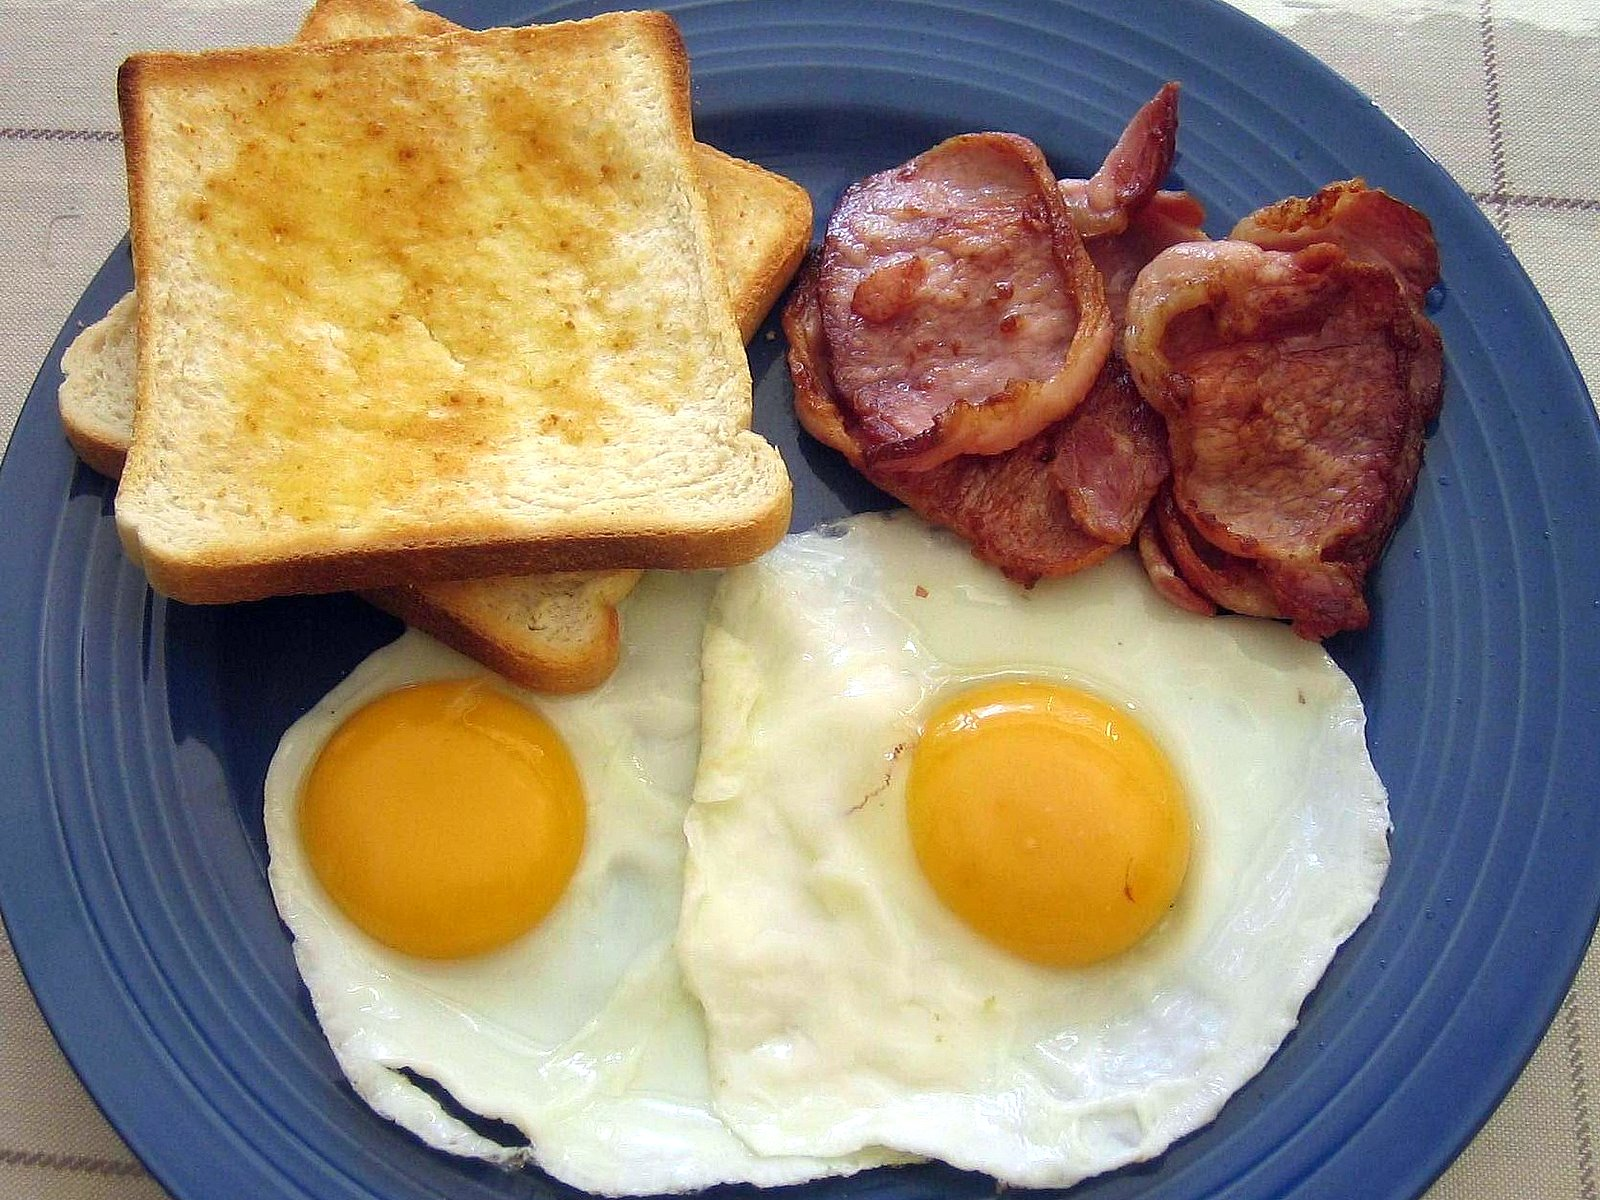 https://goodliving.vn/wp-content/uploads/2013/10/bacon-and-eggs.jpg